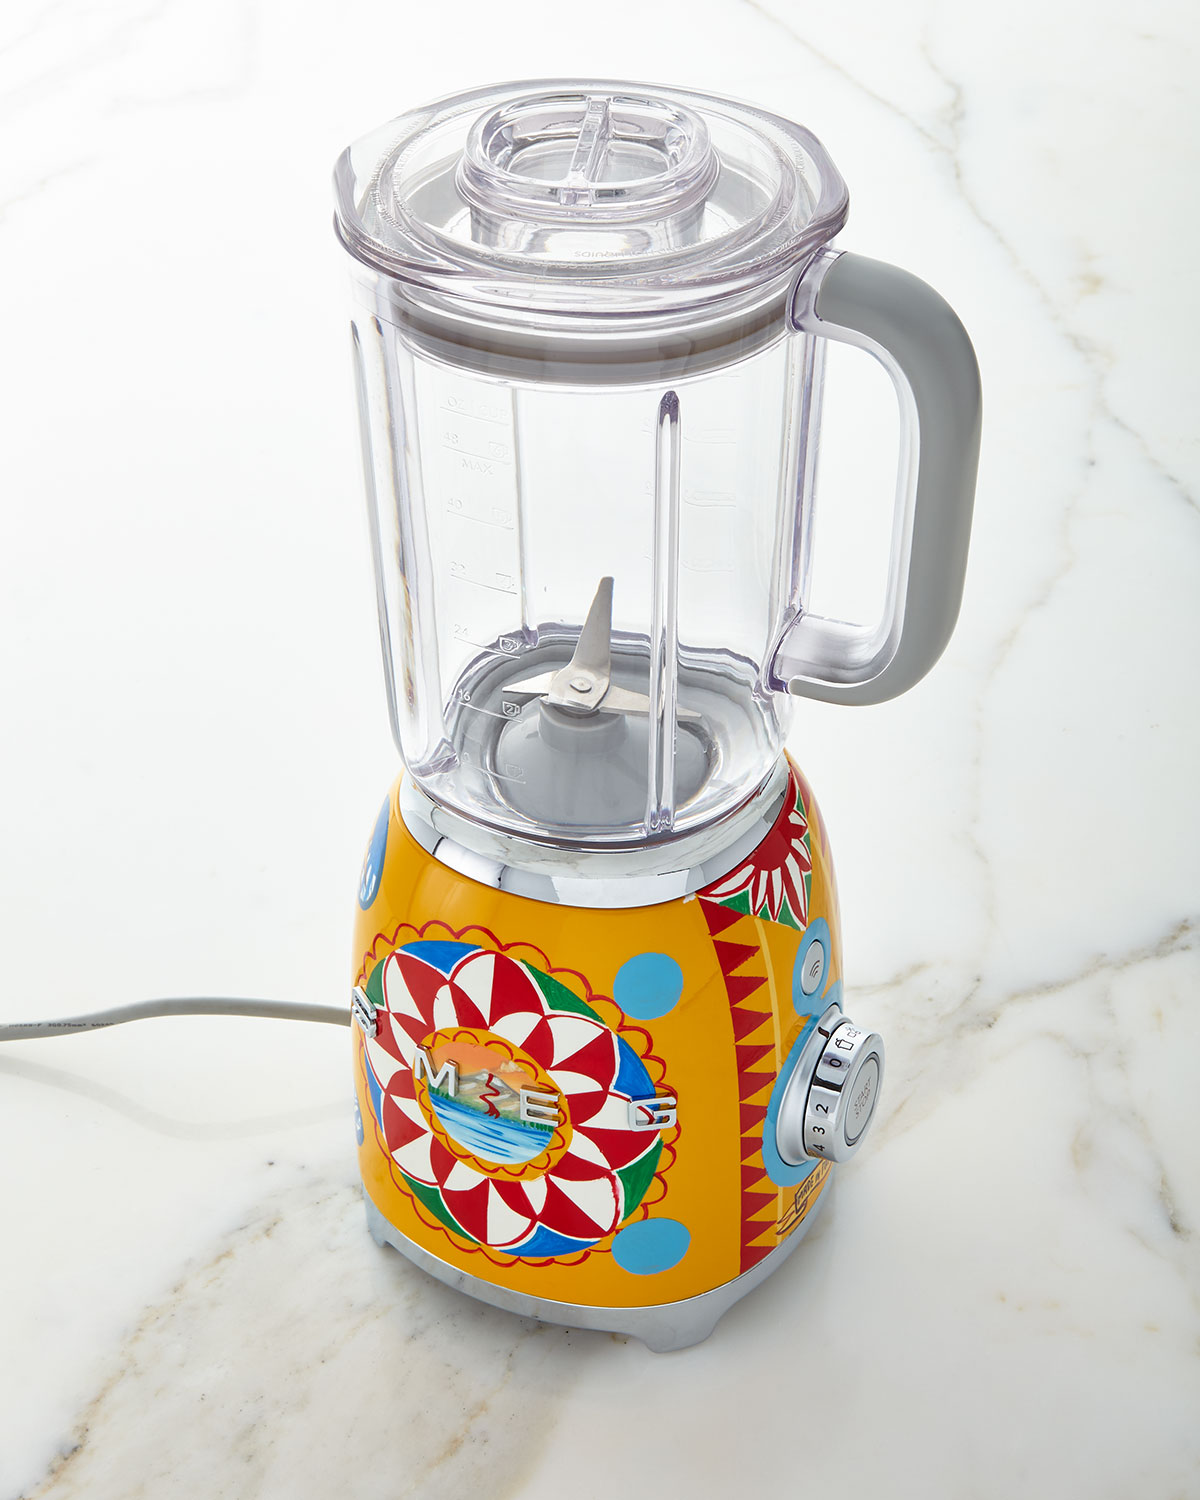 Smeg Dolce Gabbana X Smeg Sicily Is My Love Tea Kettle And Matching Items Matching Items Neiman Marcus